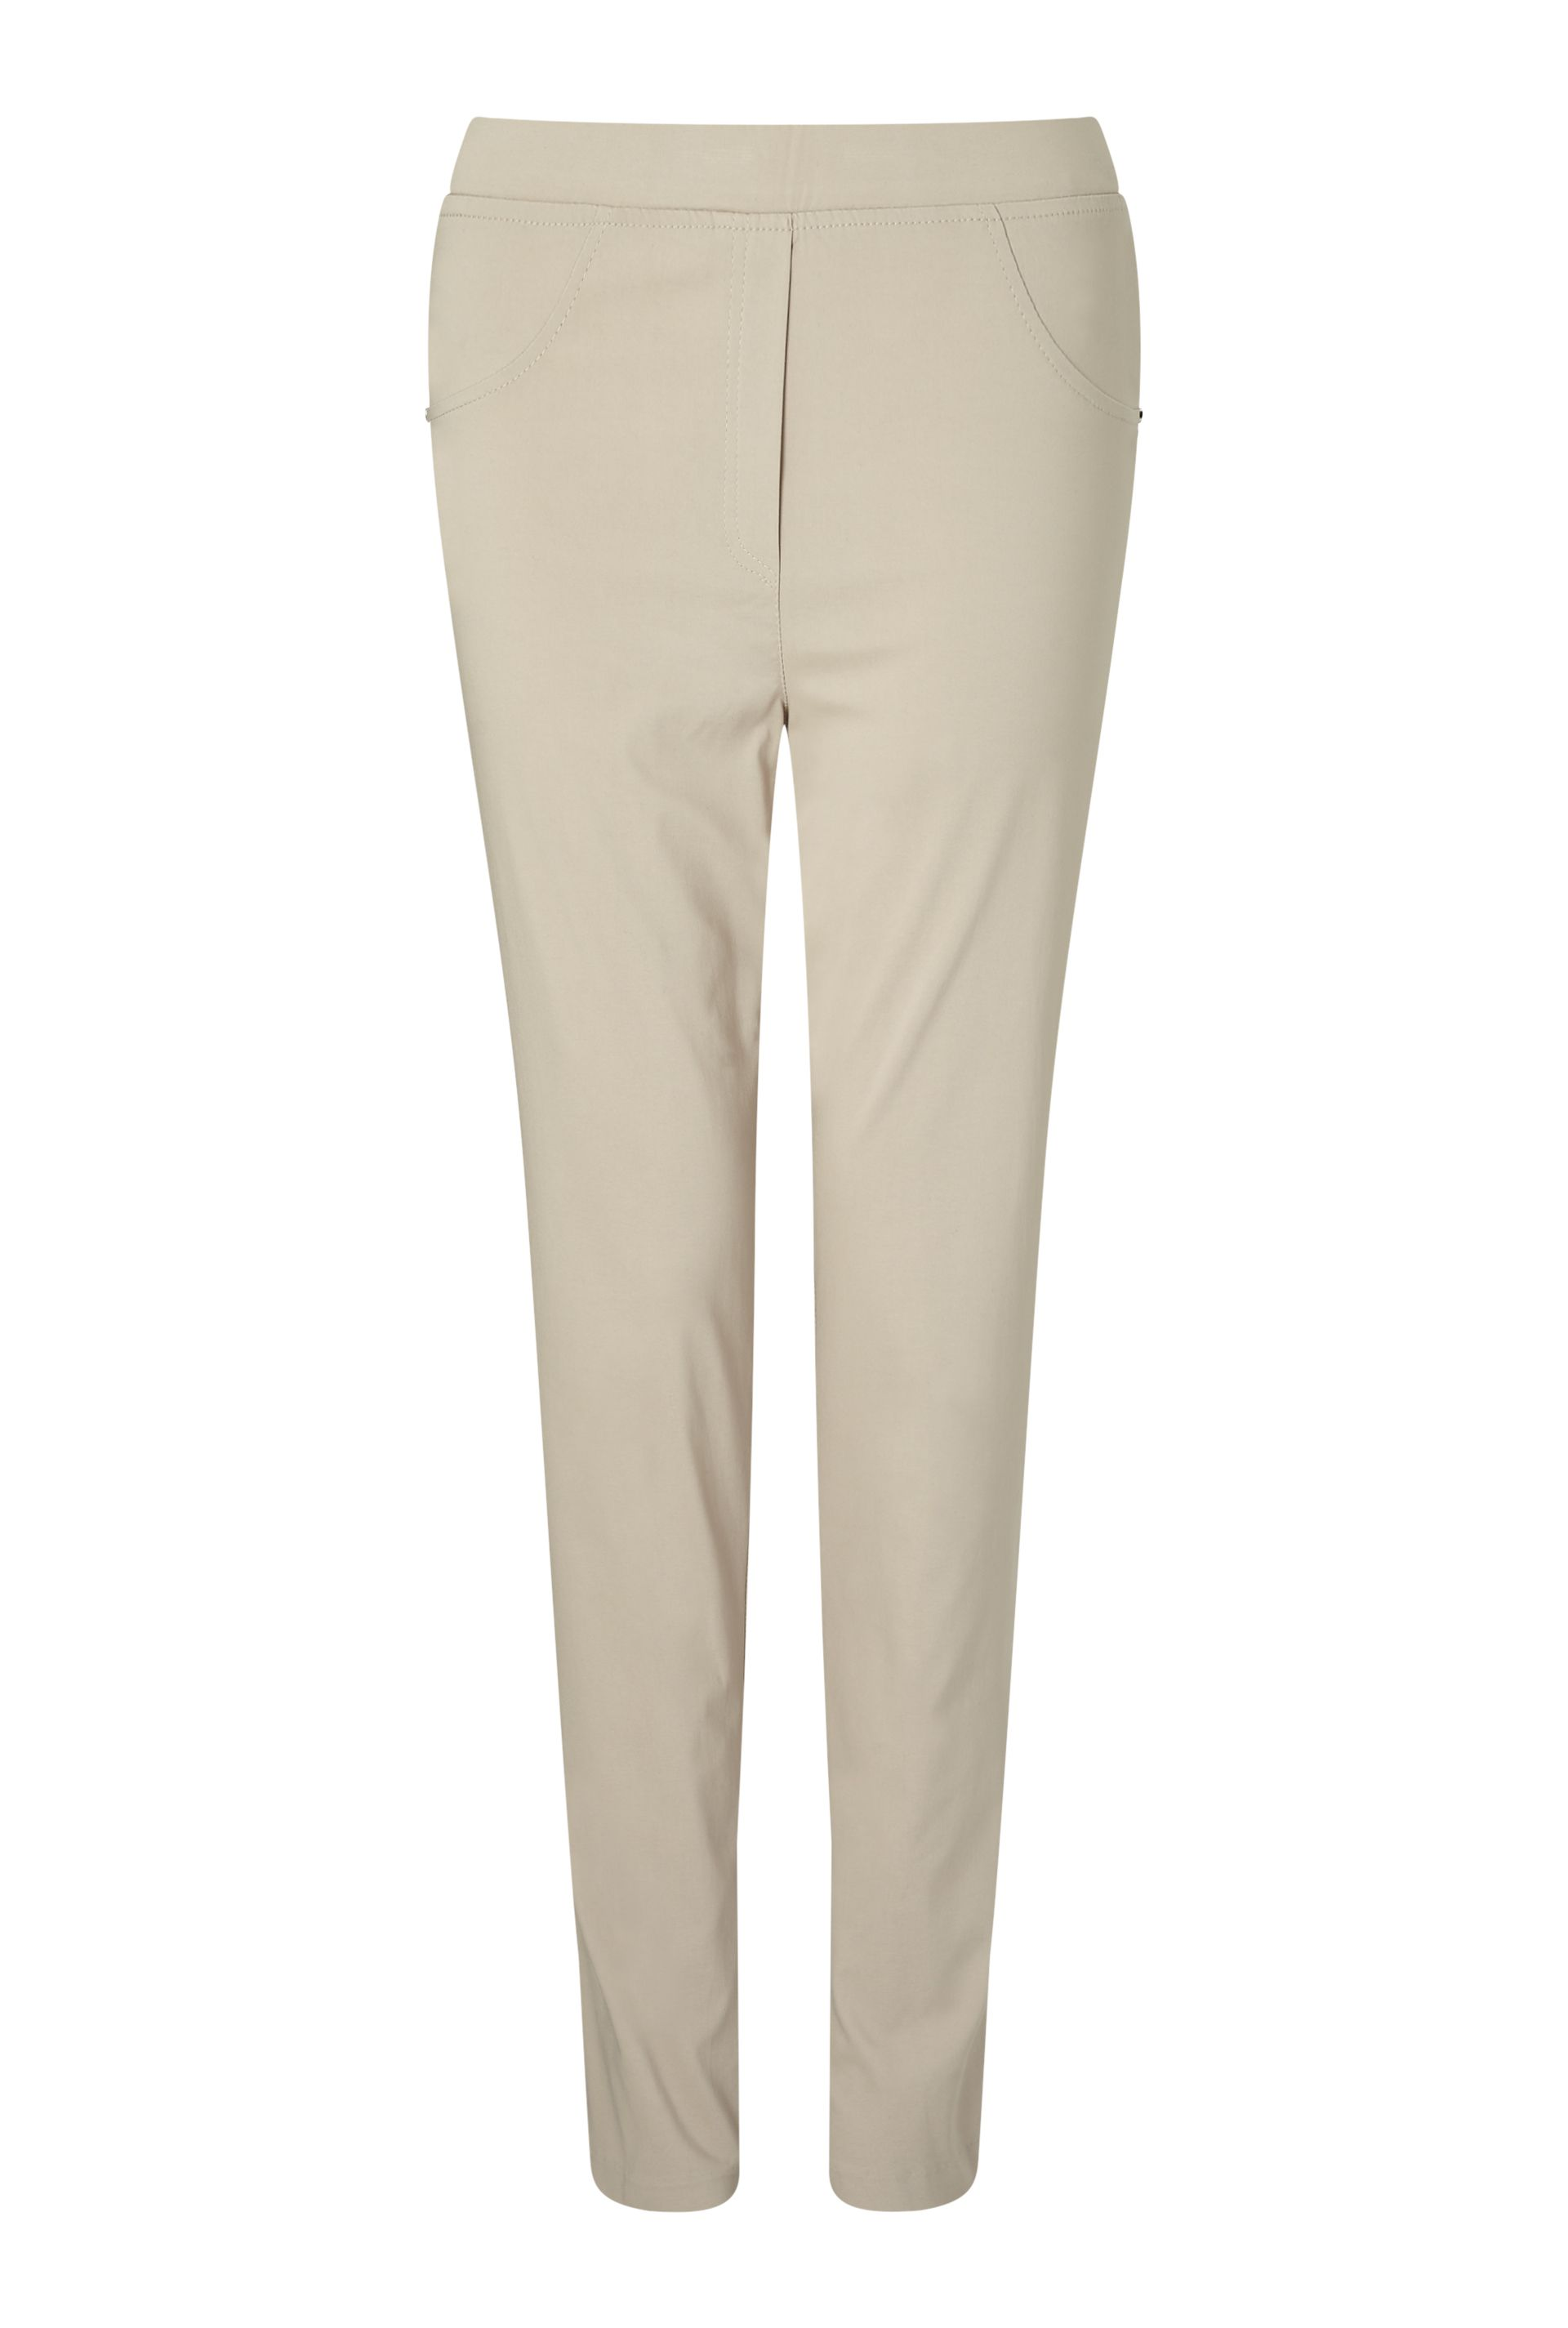 James Lakeland Long Length Bengalina Trouser, White